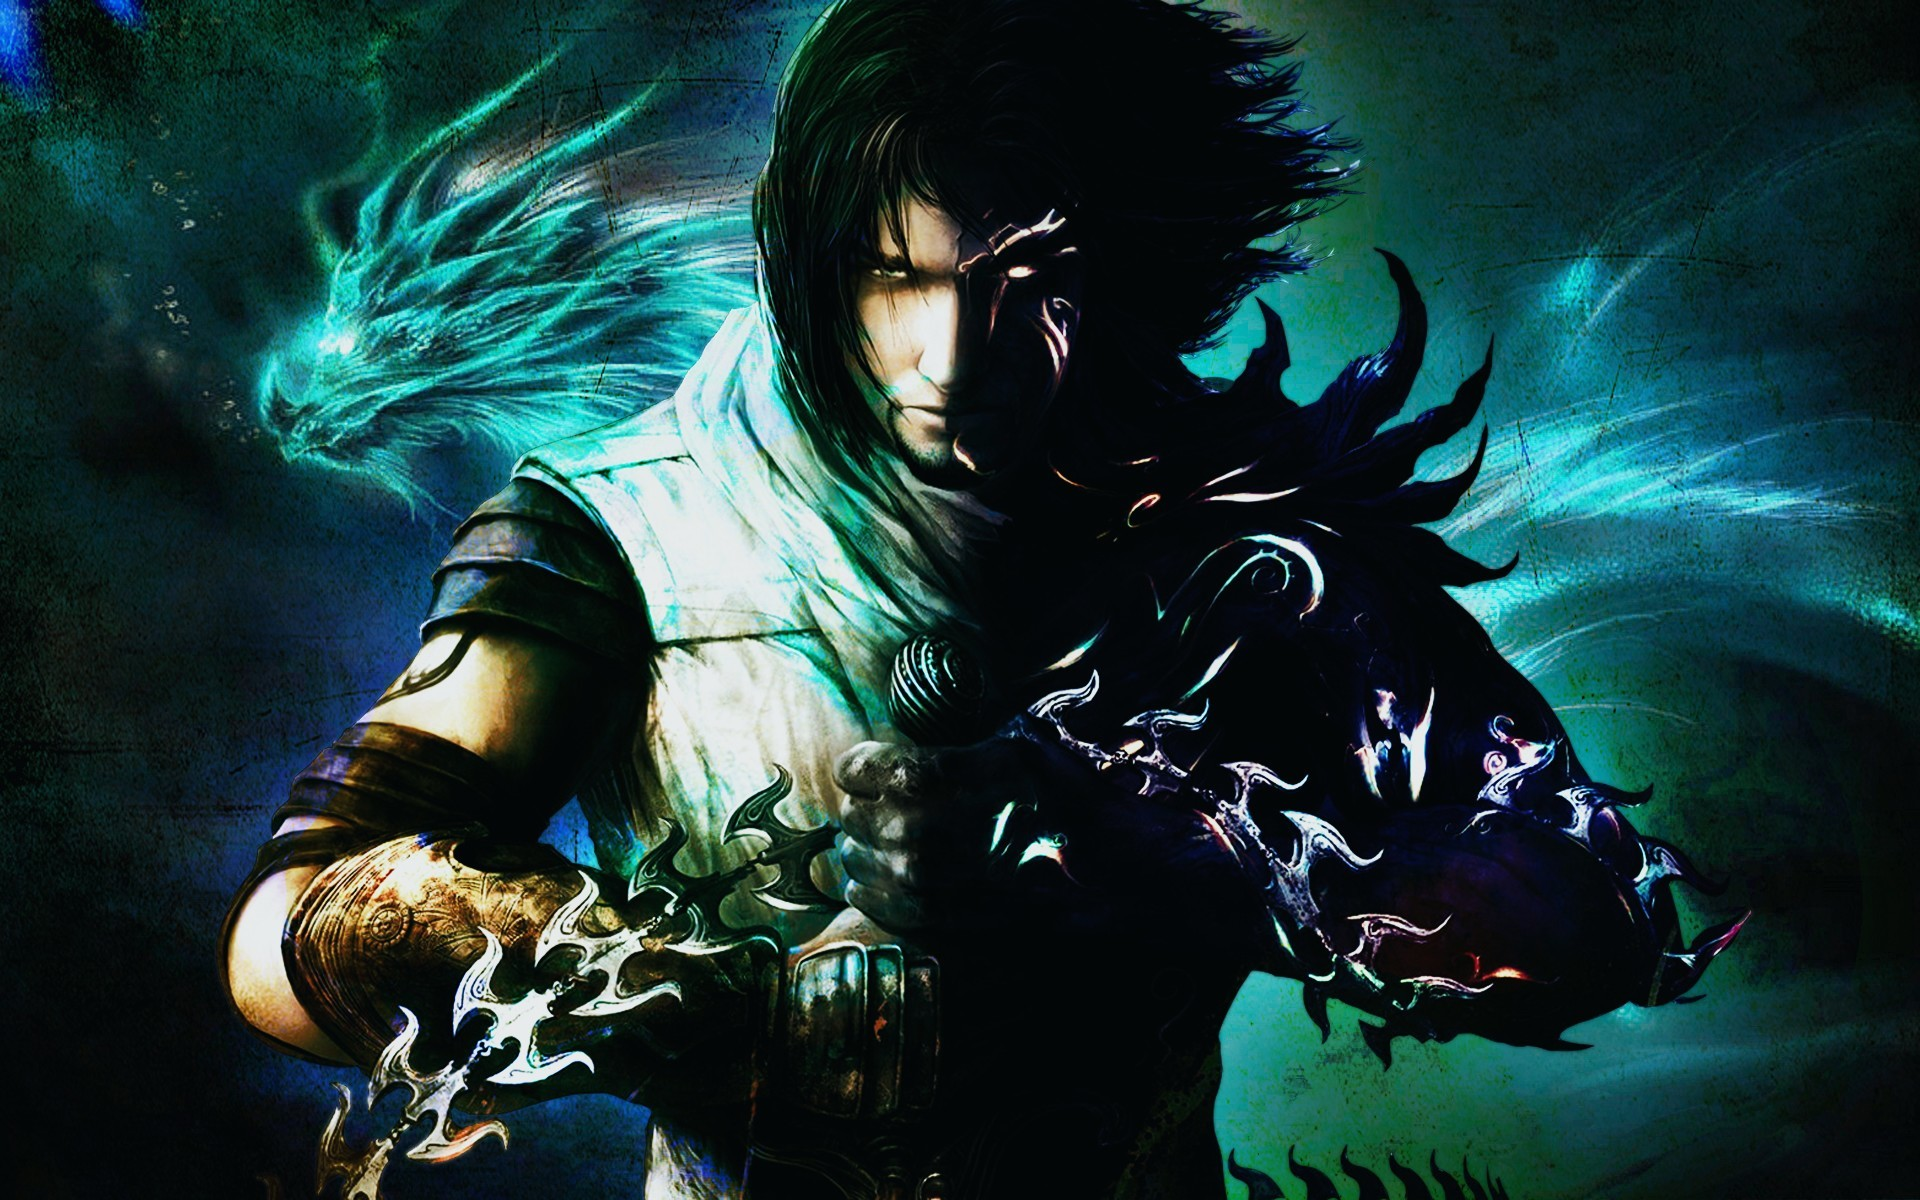 1920x1200 Widescreen Prince Of Persia Hd With Princes Percia Images Mobile Wallpaper  For Laptop Full Screen Photos Pics Phones